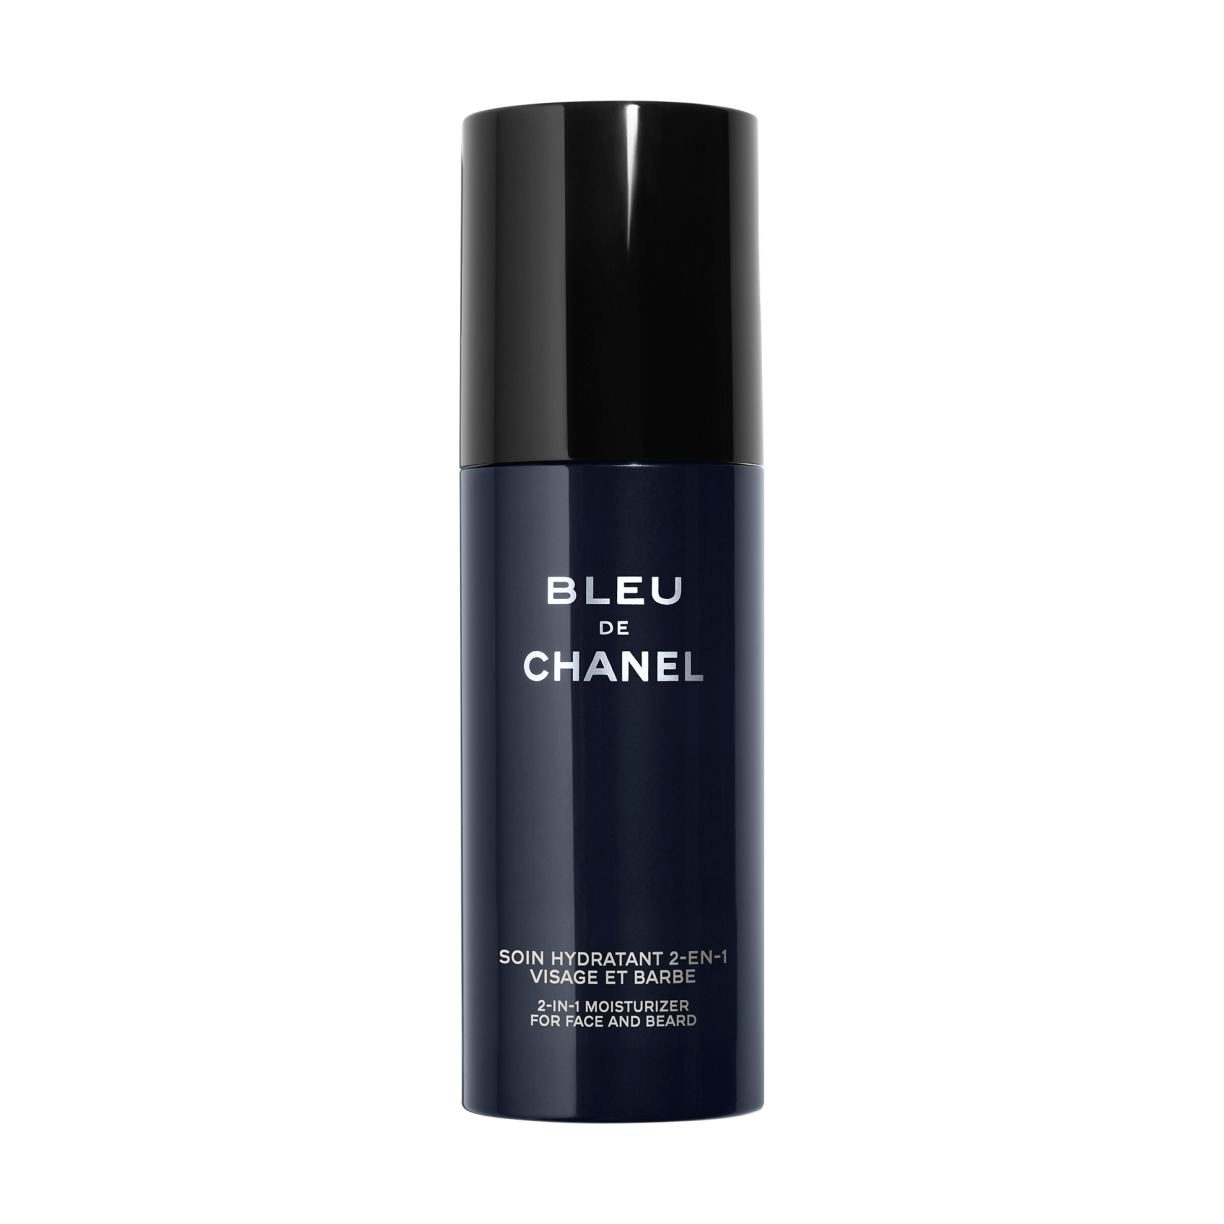 BLEU DE CHANEL 2-IN-1 MOISTURISER FOR FACE AND BEARD 50ml